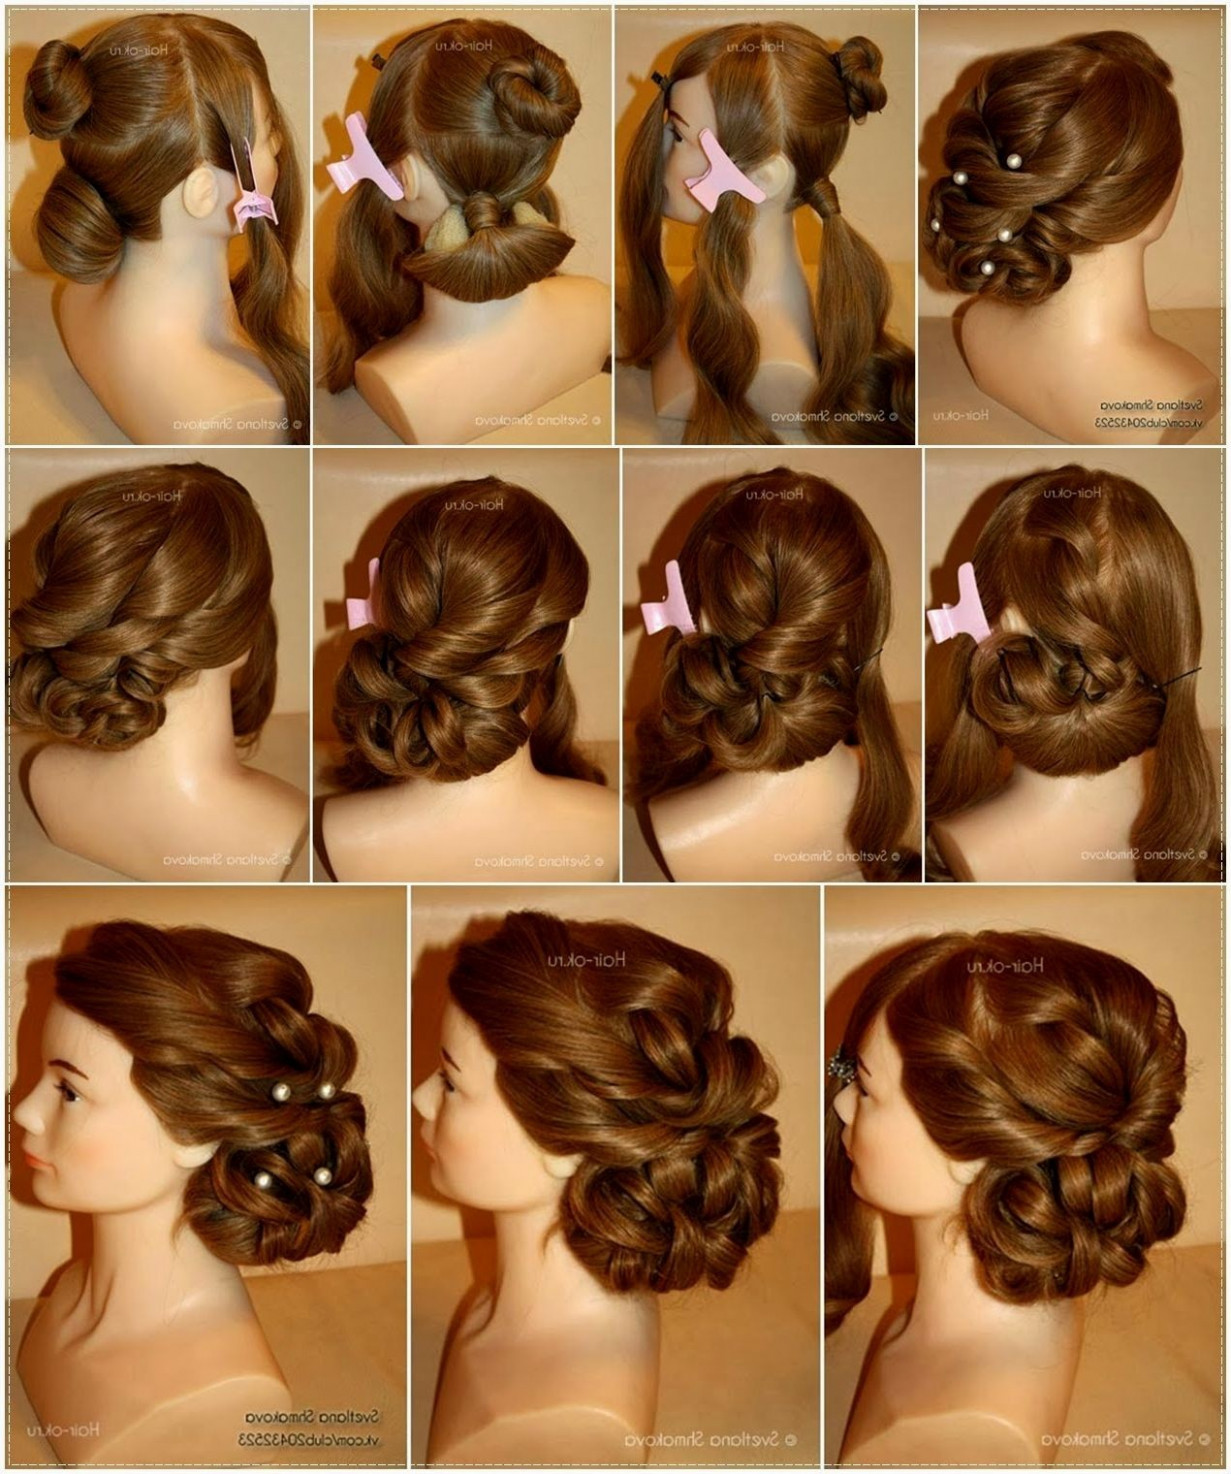 Indian Wedding Hair Style Step By Step Image - Hairstyles ...